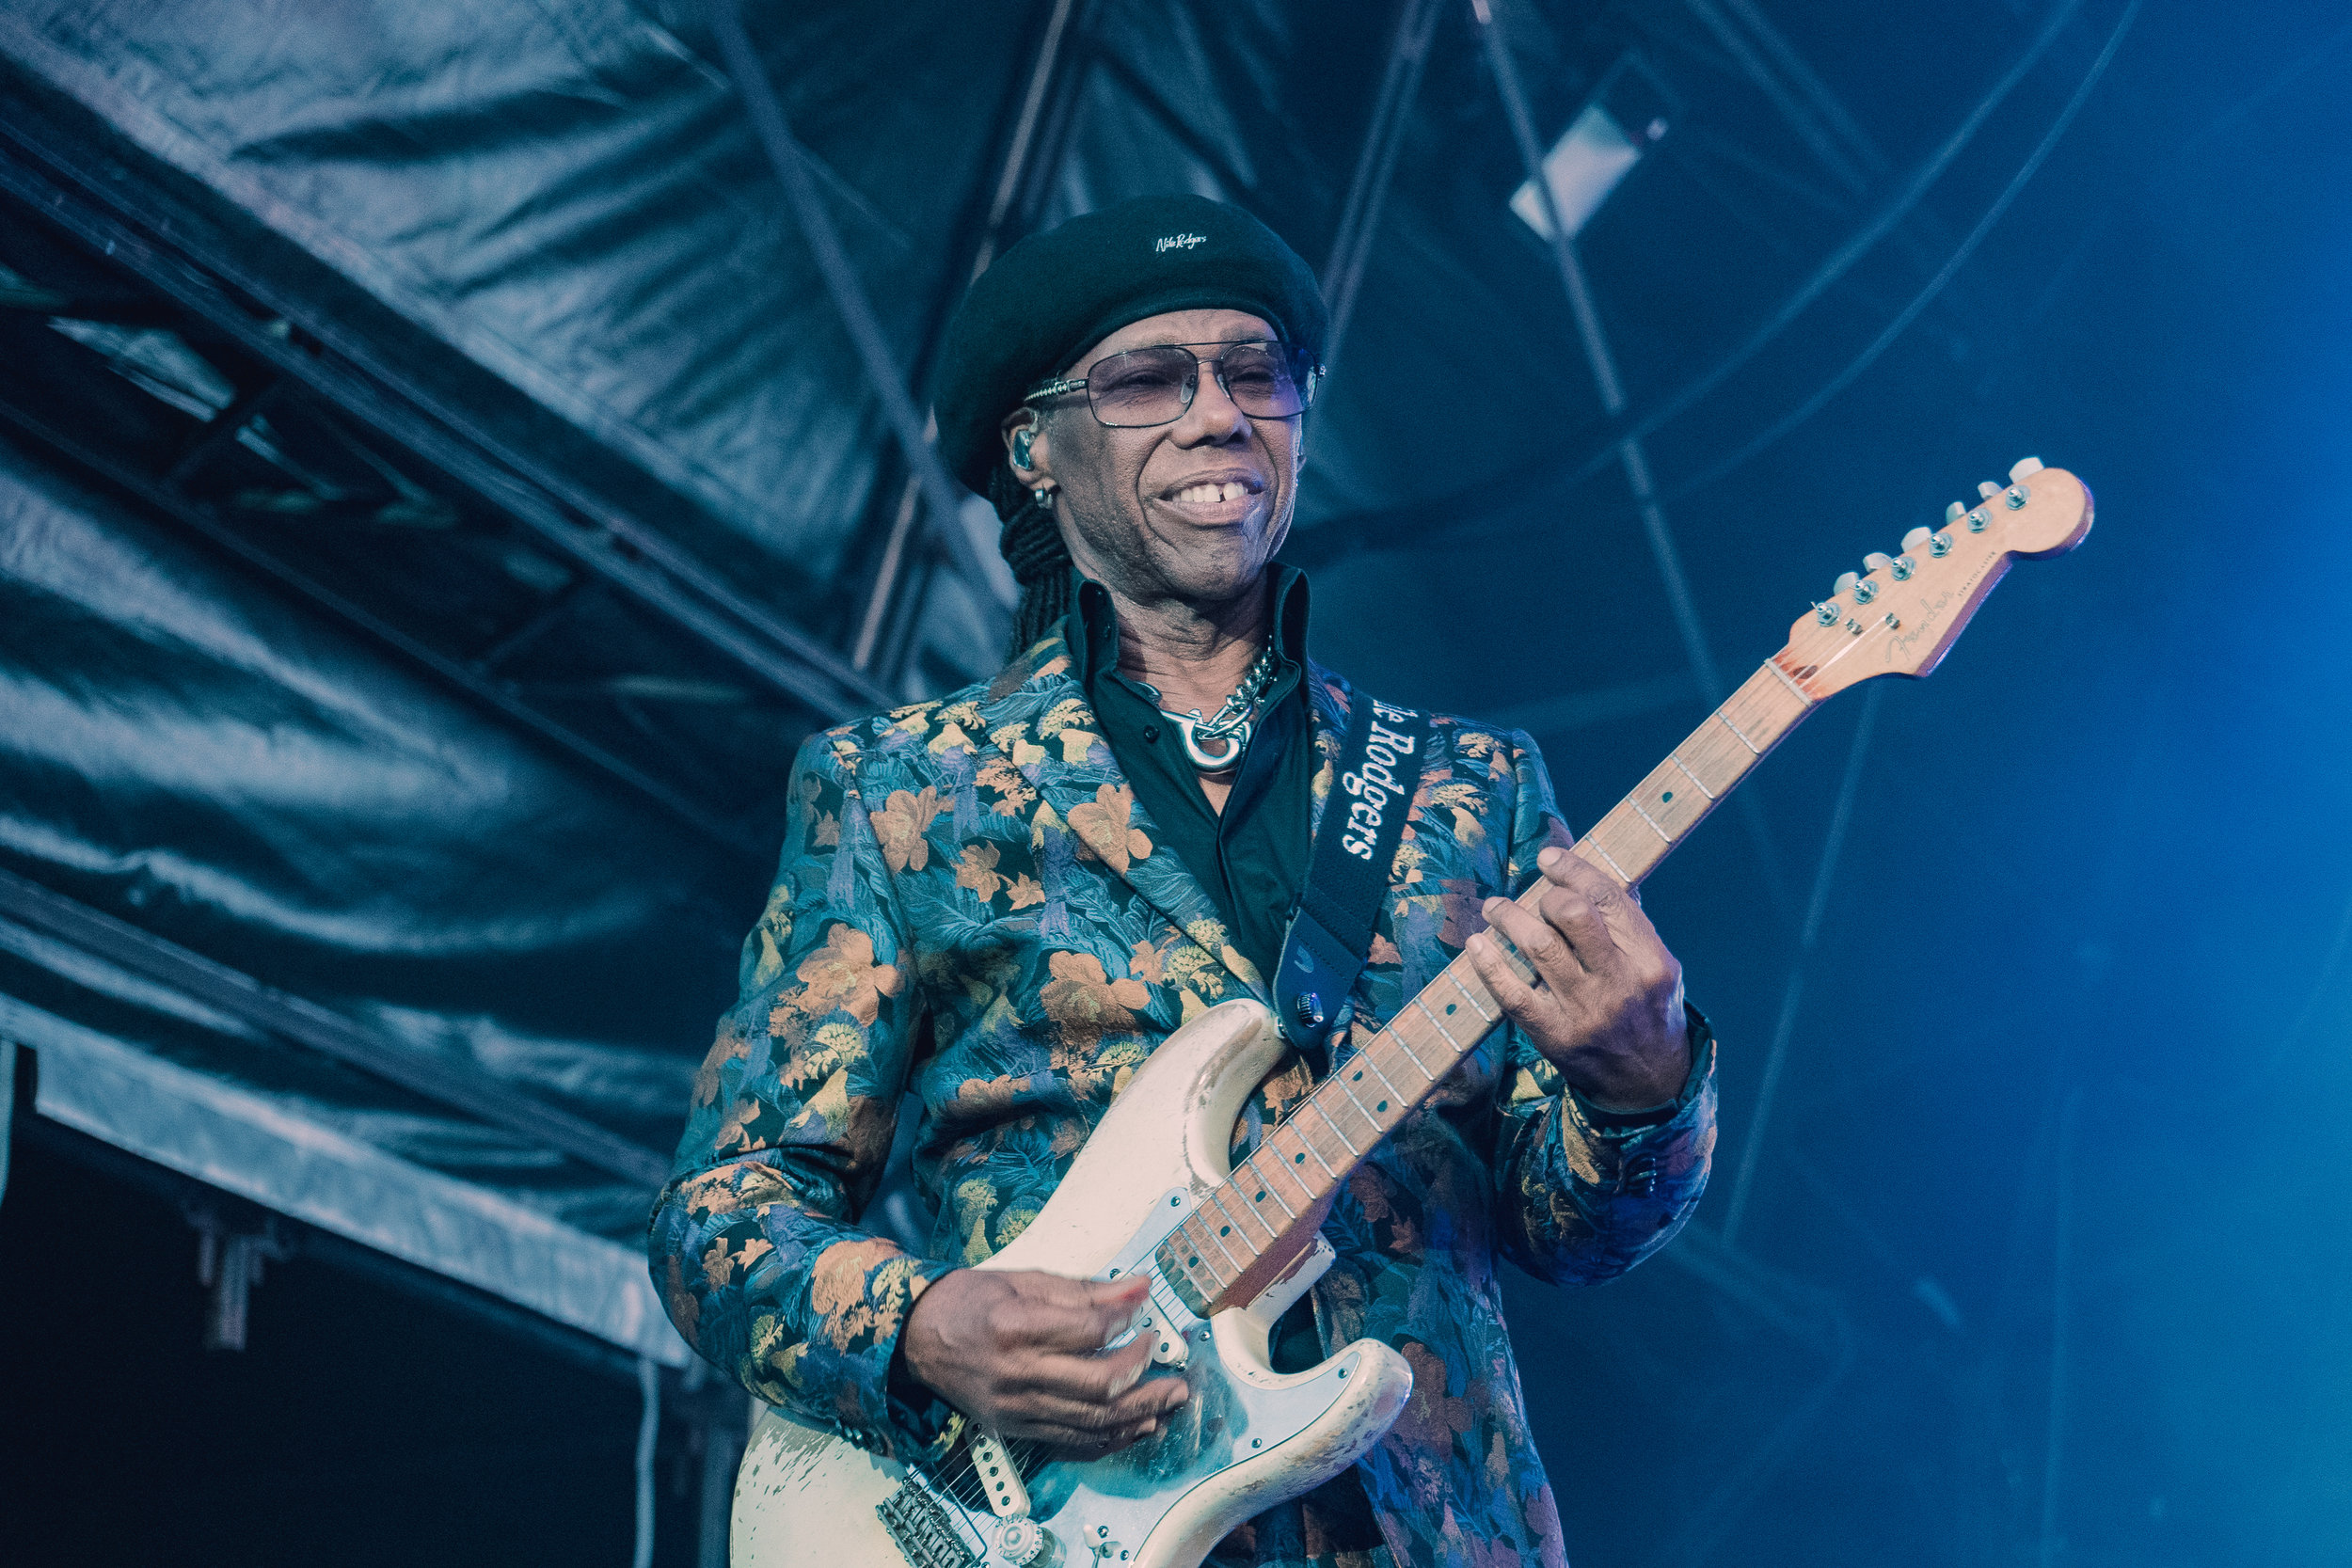 Nile_Rodgers_Chic09291.jpg